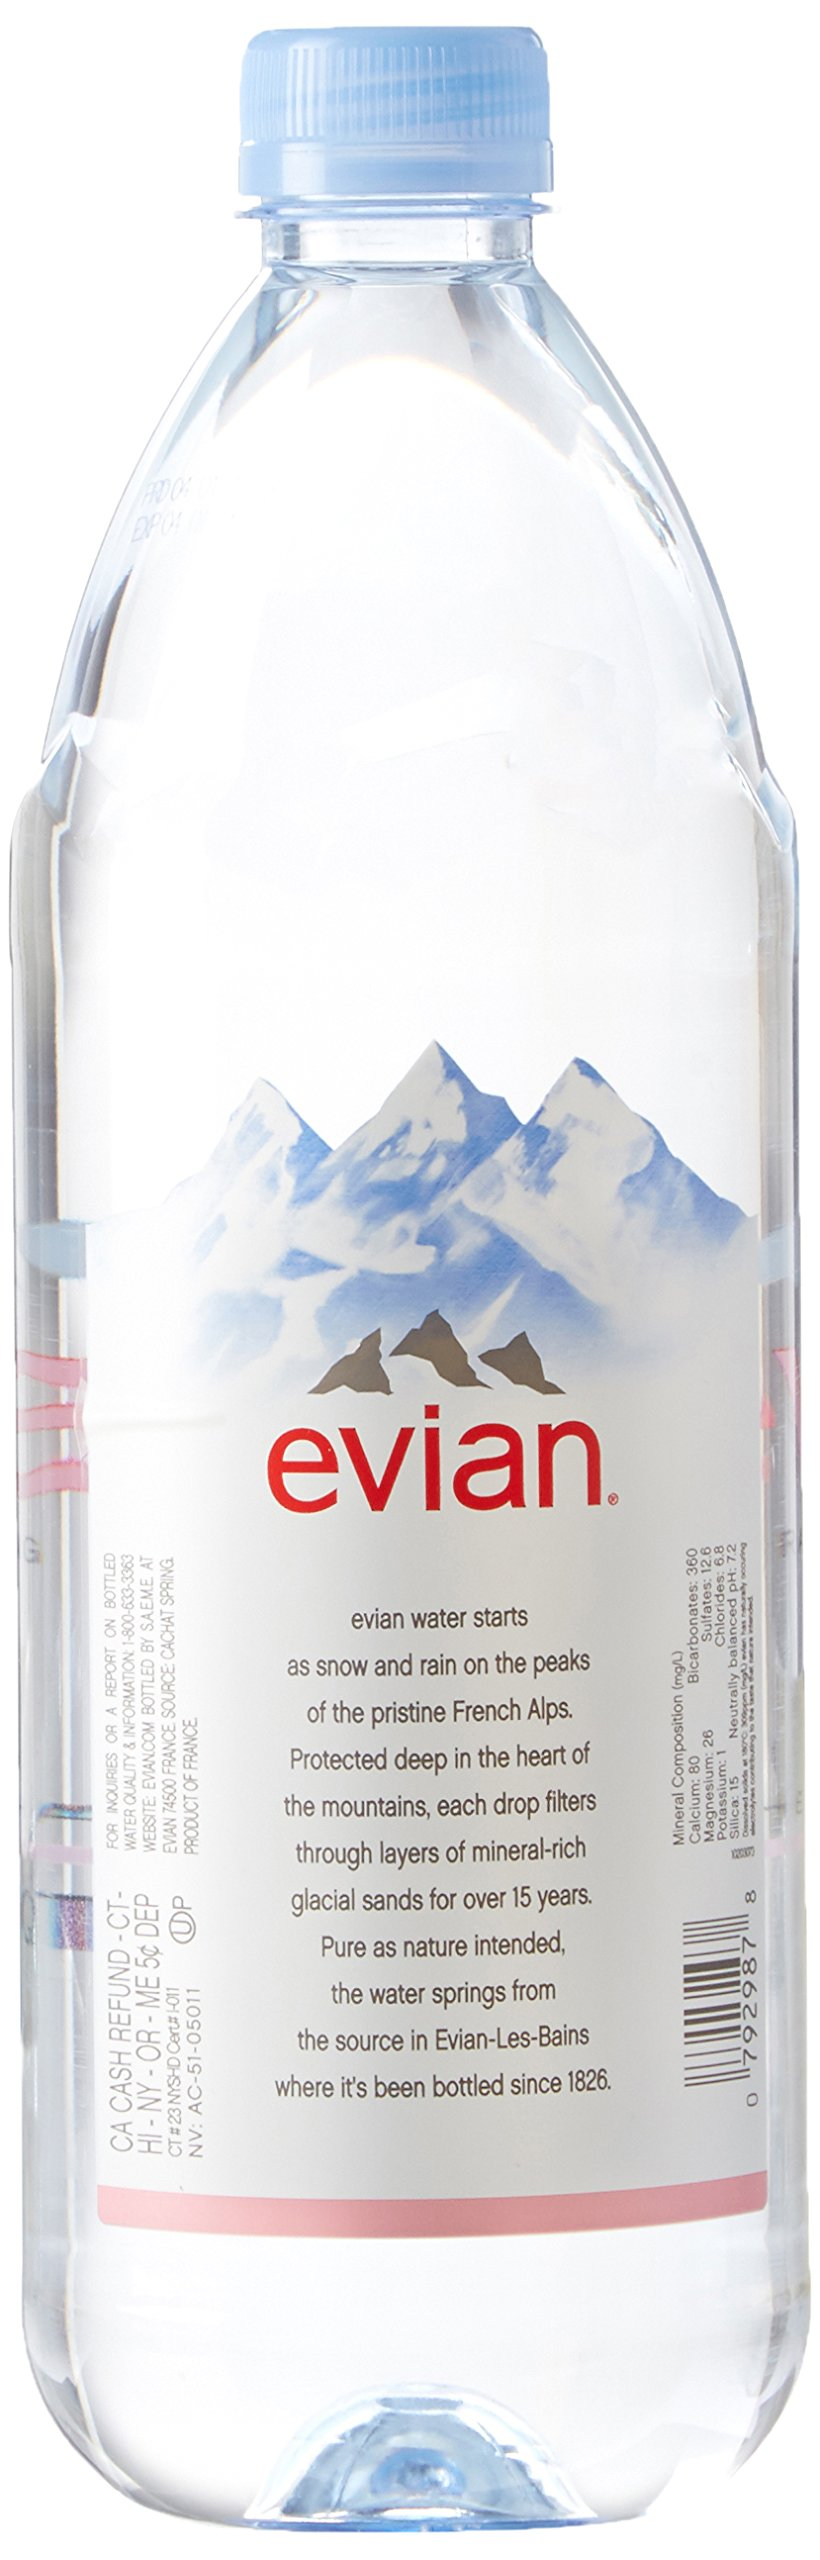 Evian Natural Spring Water (One Case of 12 Individual Bottles, each bottle is 1 liter) Naturally Filtered Spring Water in Large Bottles by evian (Image #3)